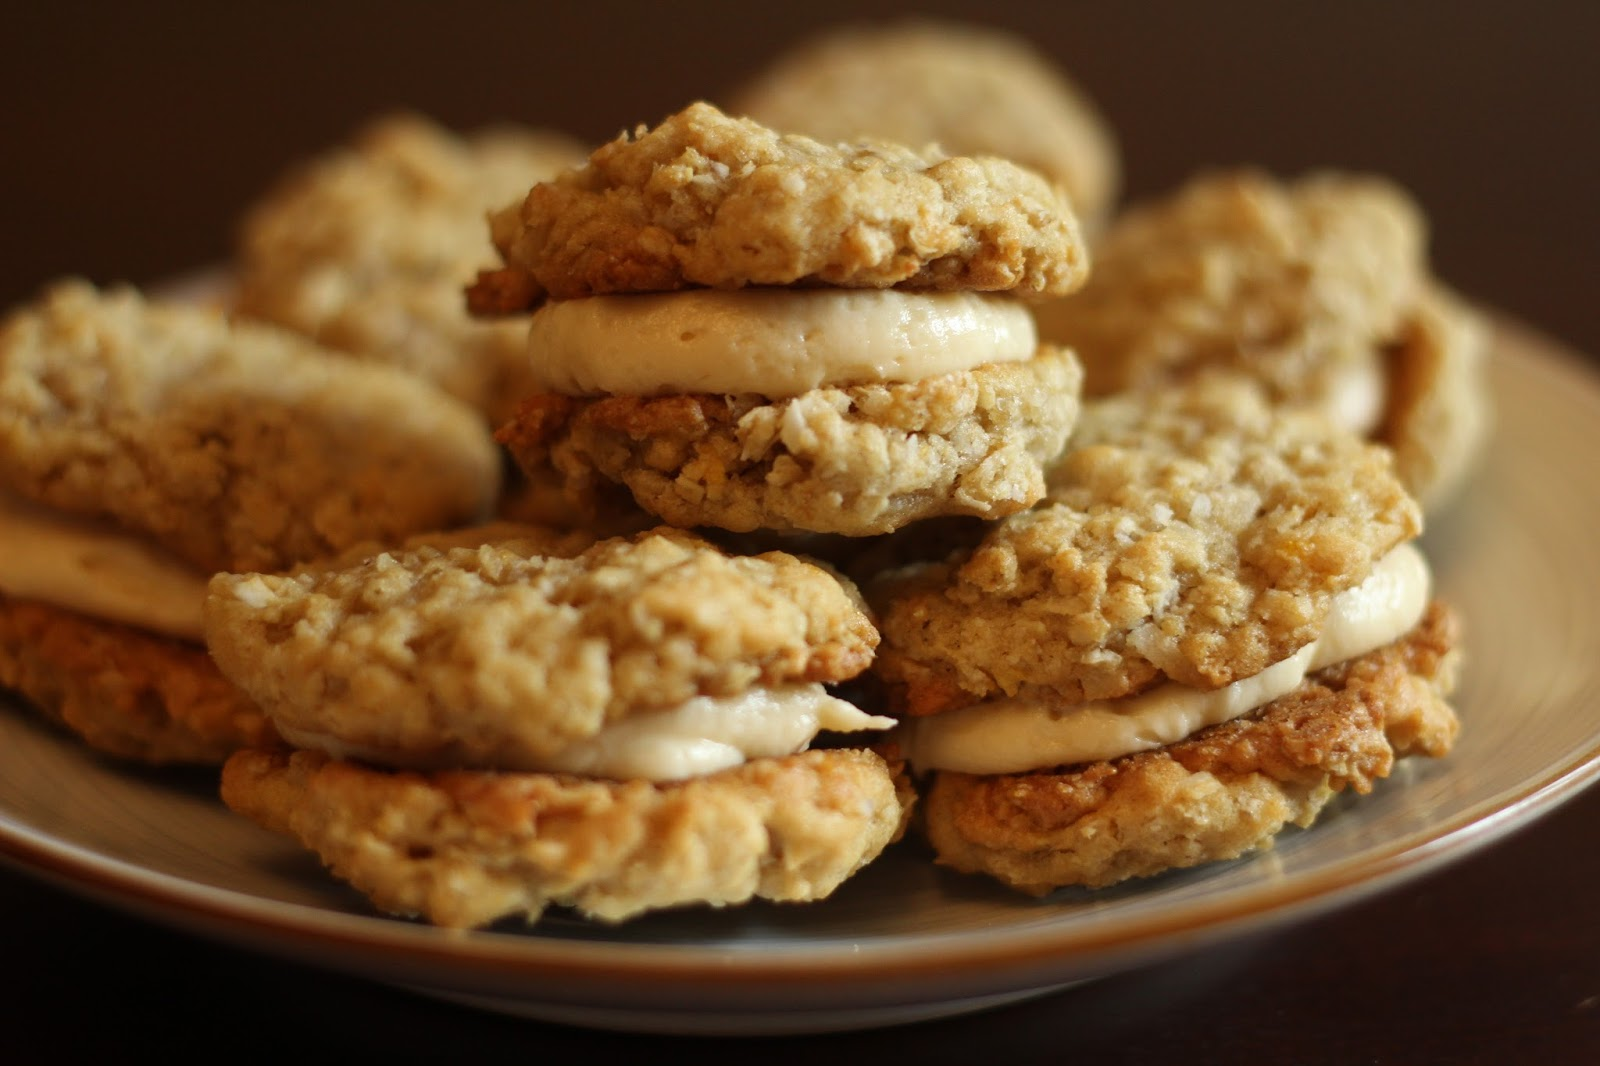 ... ...Cafe: Oatmeal Cream Pies with Salted Caramel Buttercream Frosting